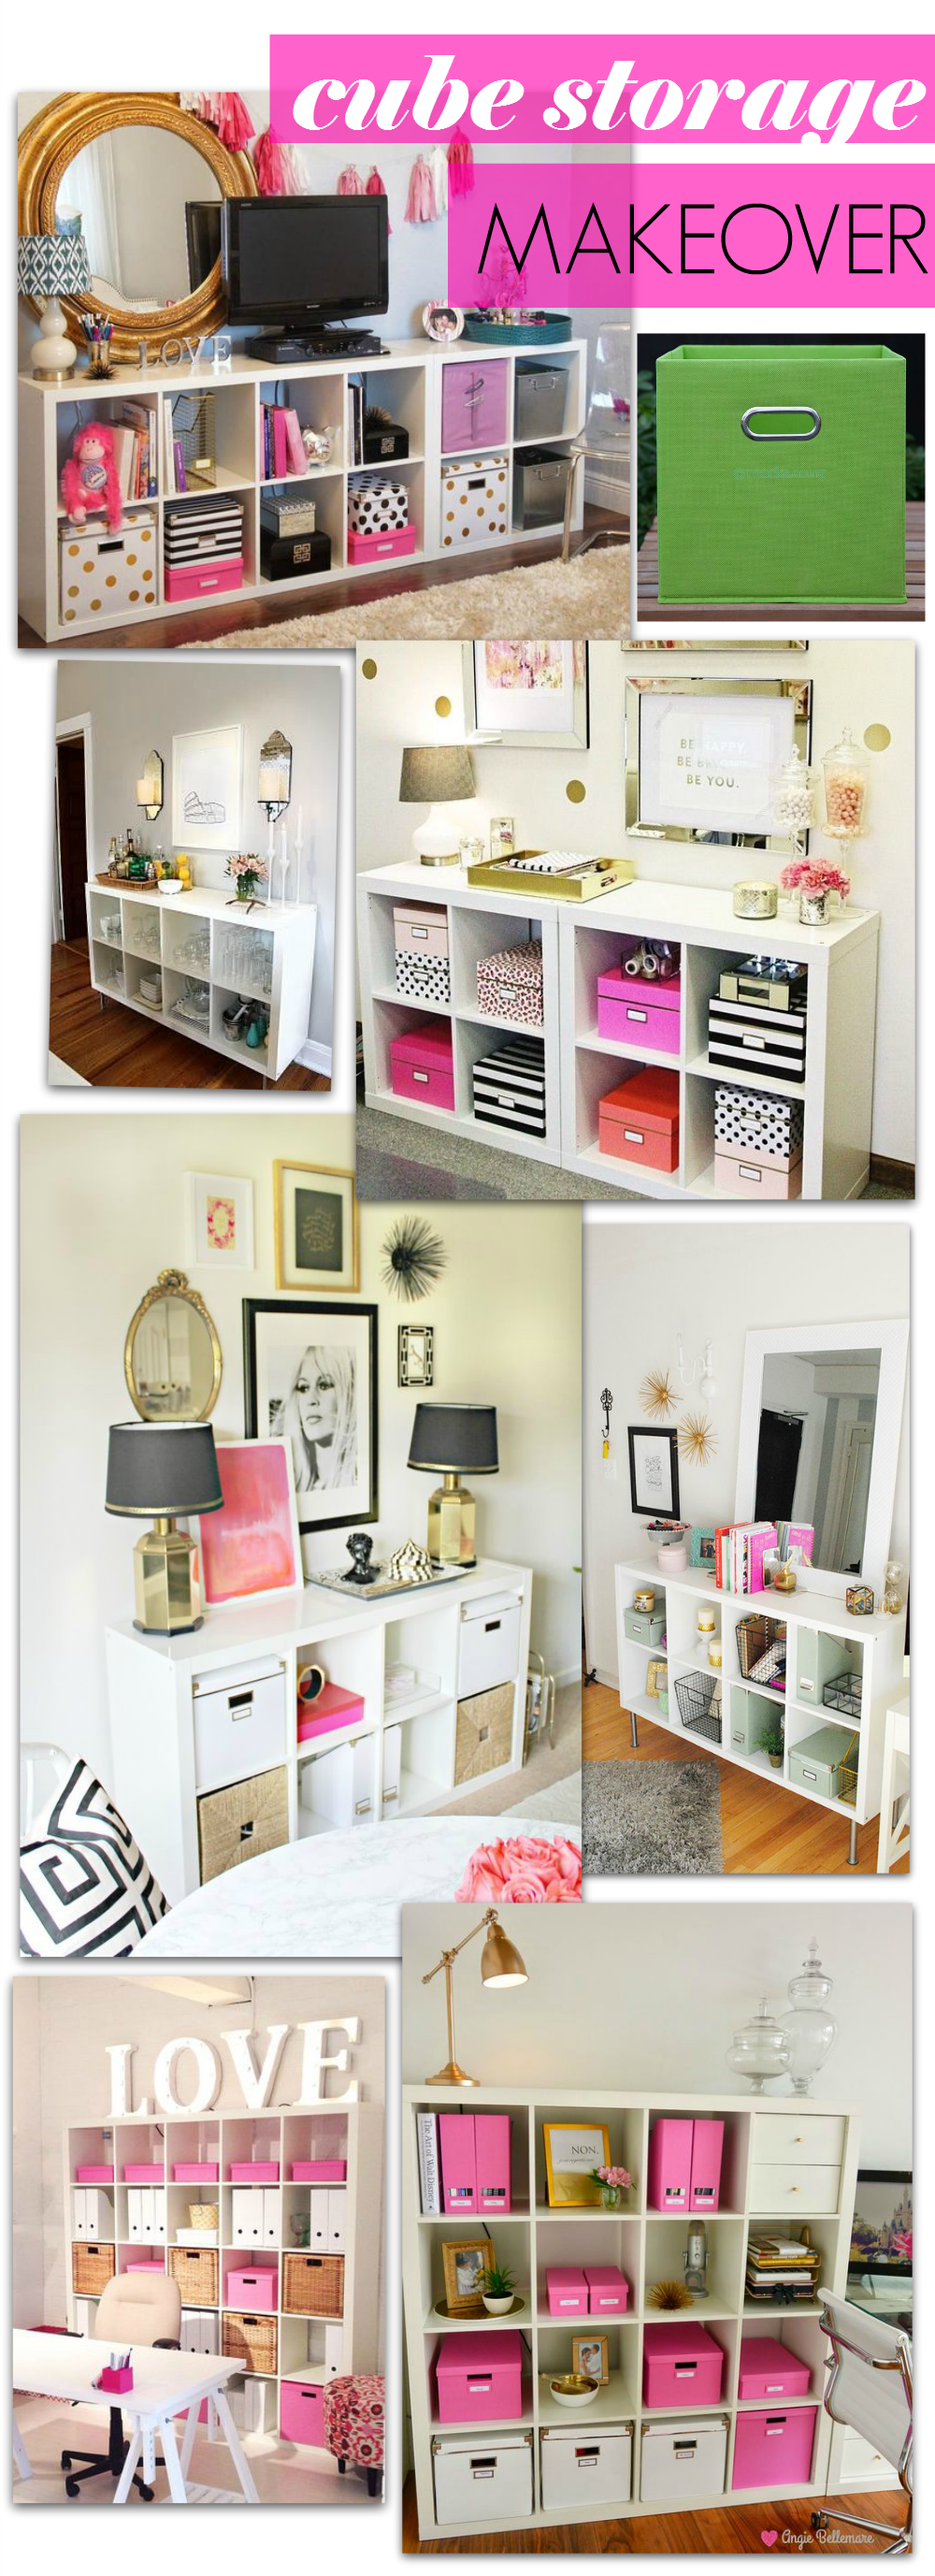 Diy Cube Fabric Drawer Makeover Tutorial Cube Storage Bedroom